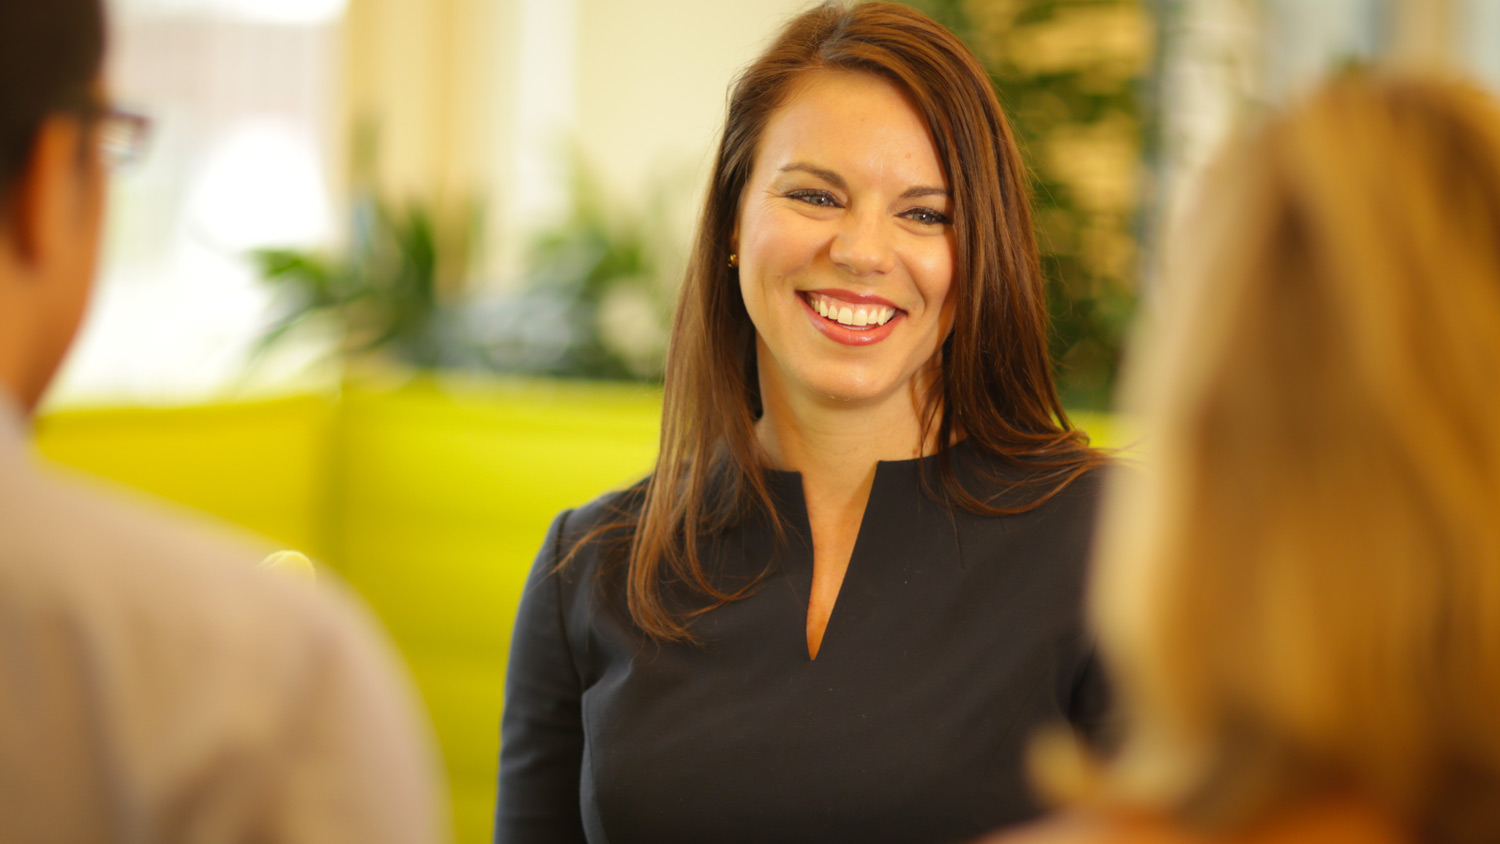 Fidelity's Women-Focused Culture Breaks the Mold in a Male-Dominated Industry